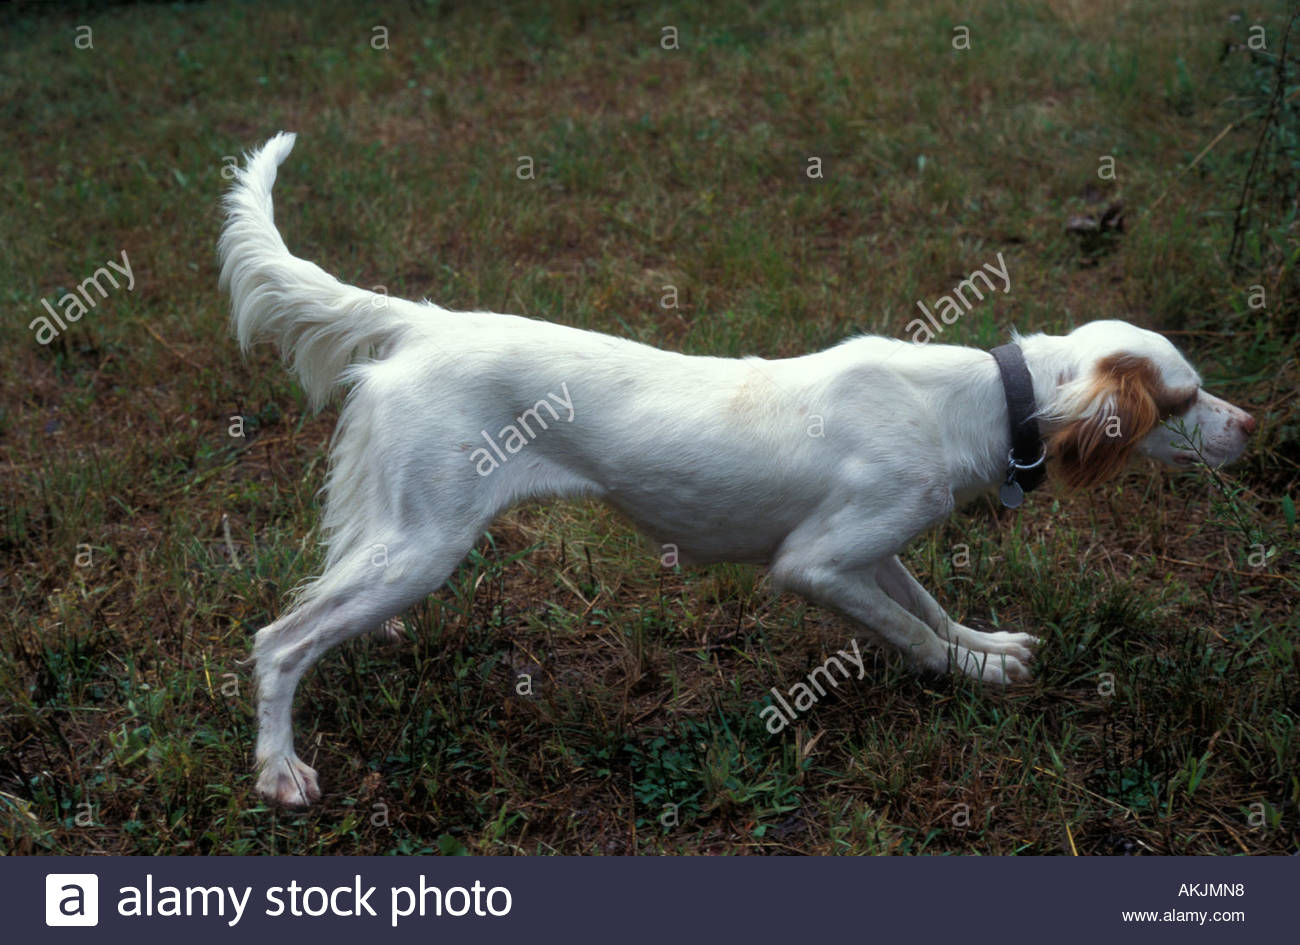 English setter pointing